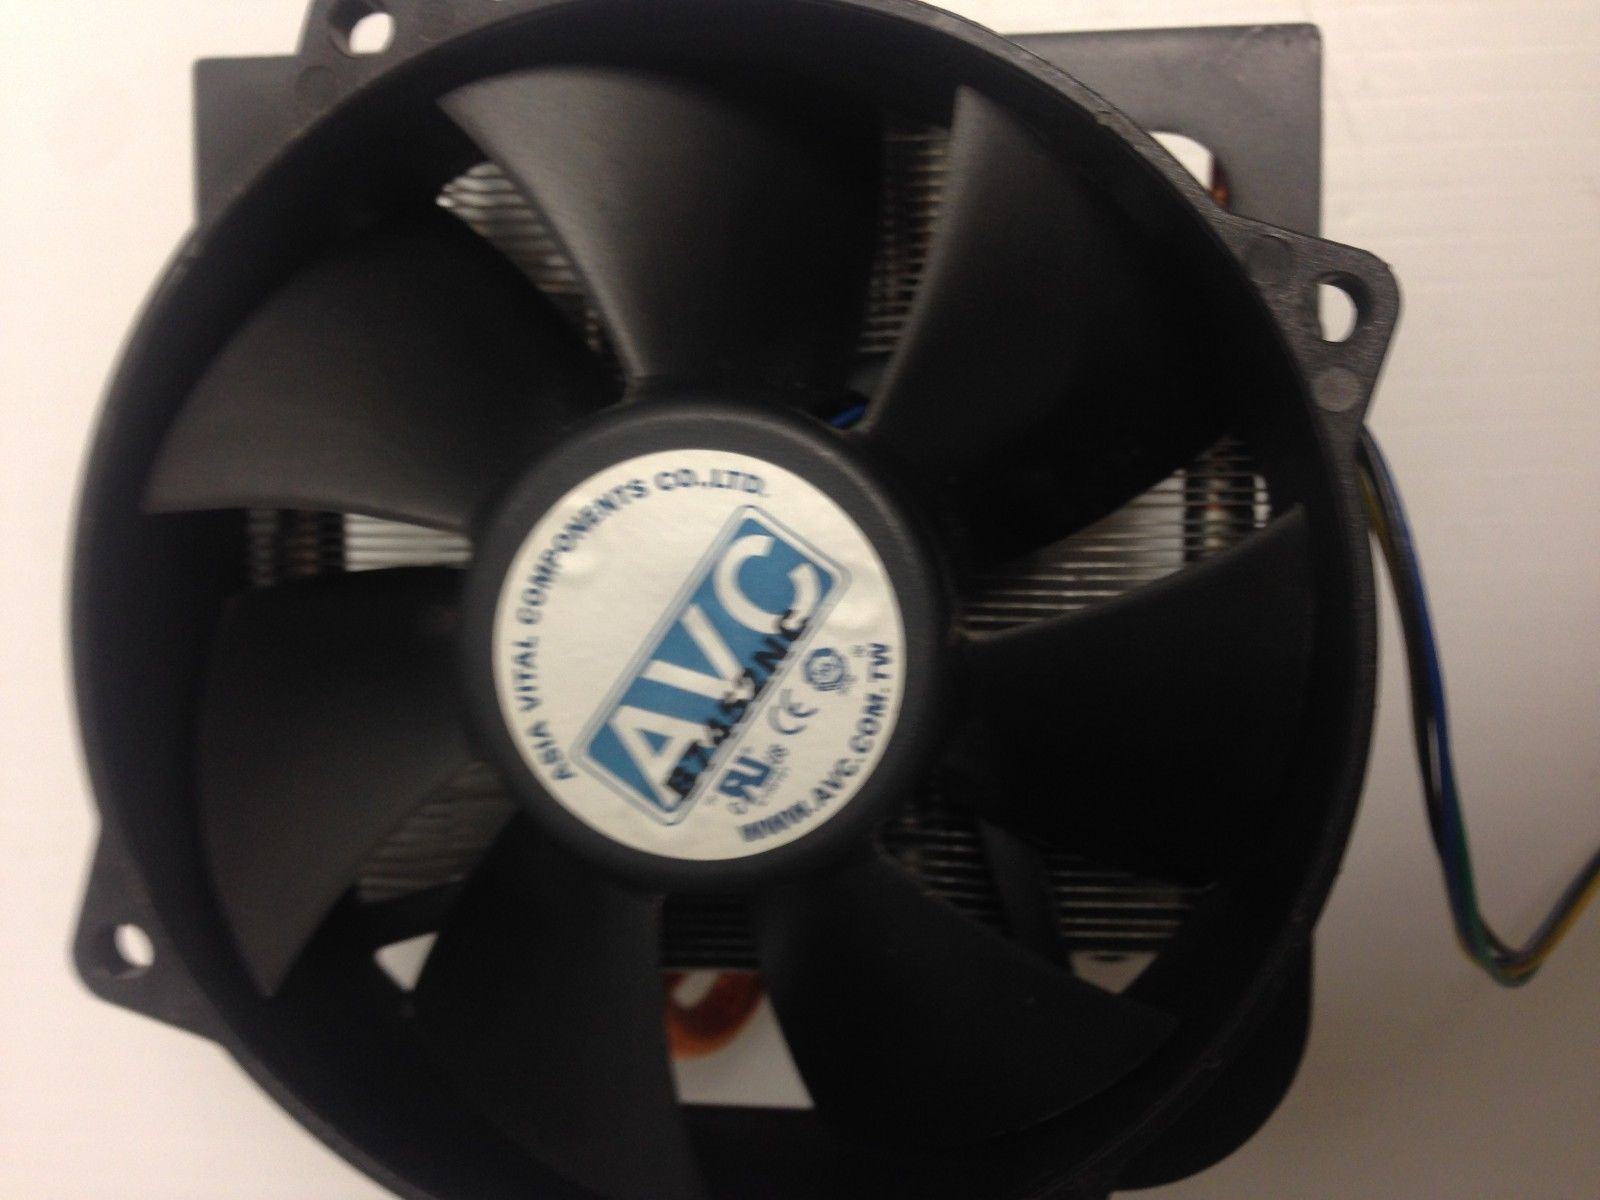 AVC Heat sink and Fan b7452nc TESTED Lot:F